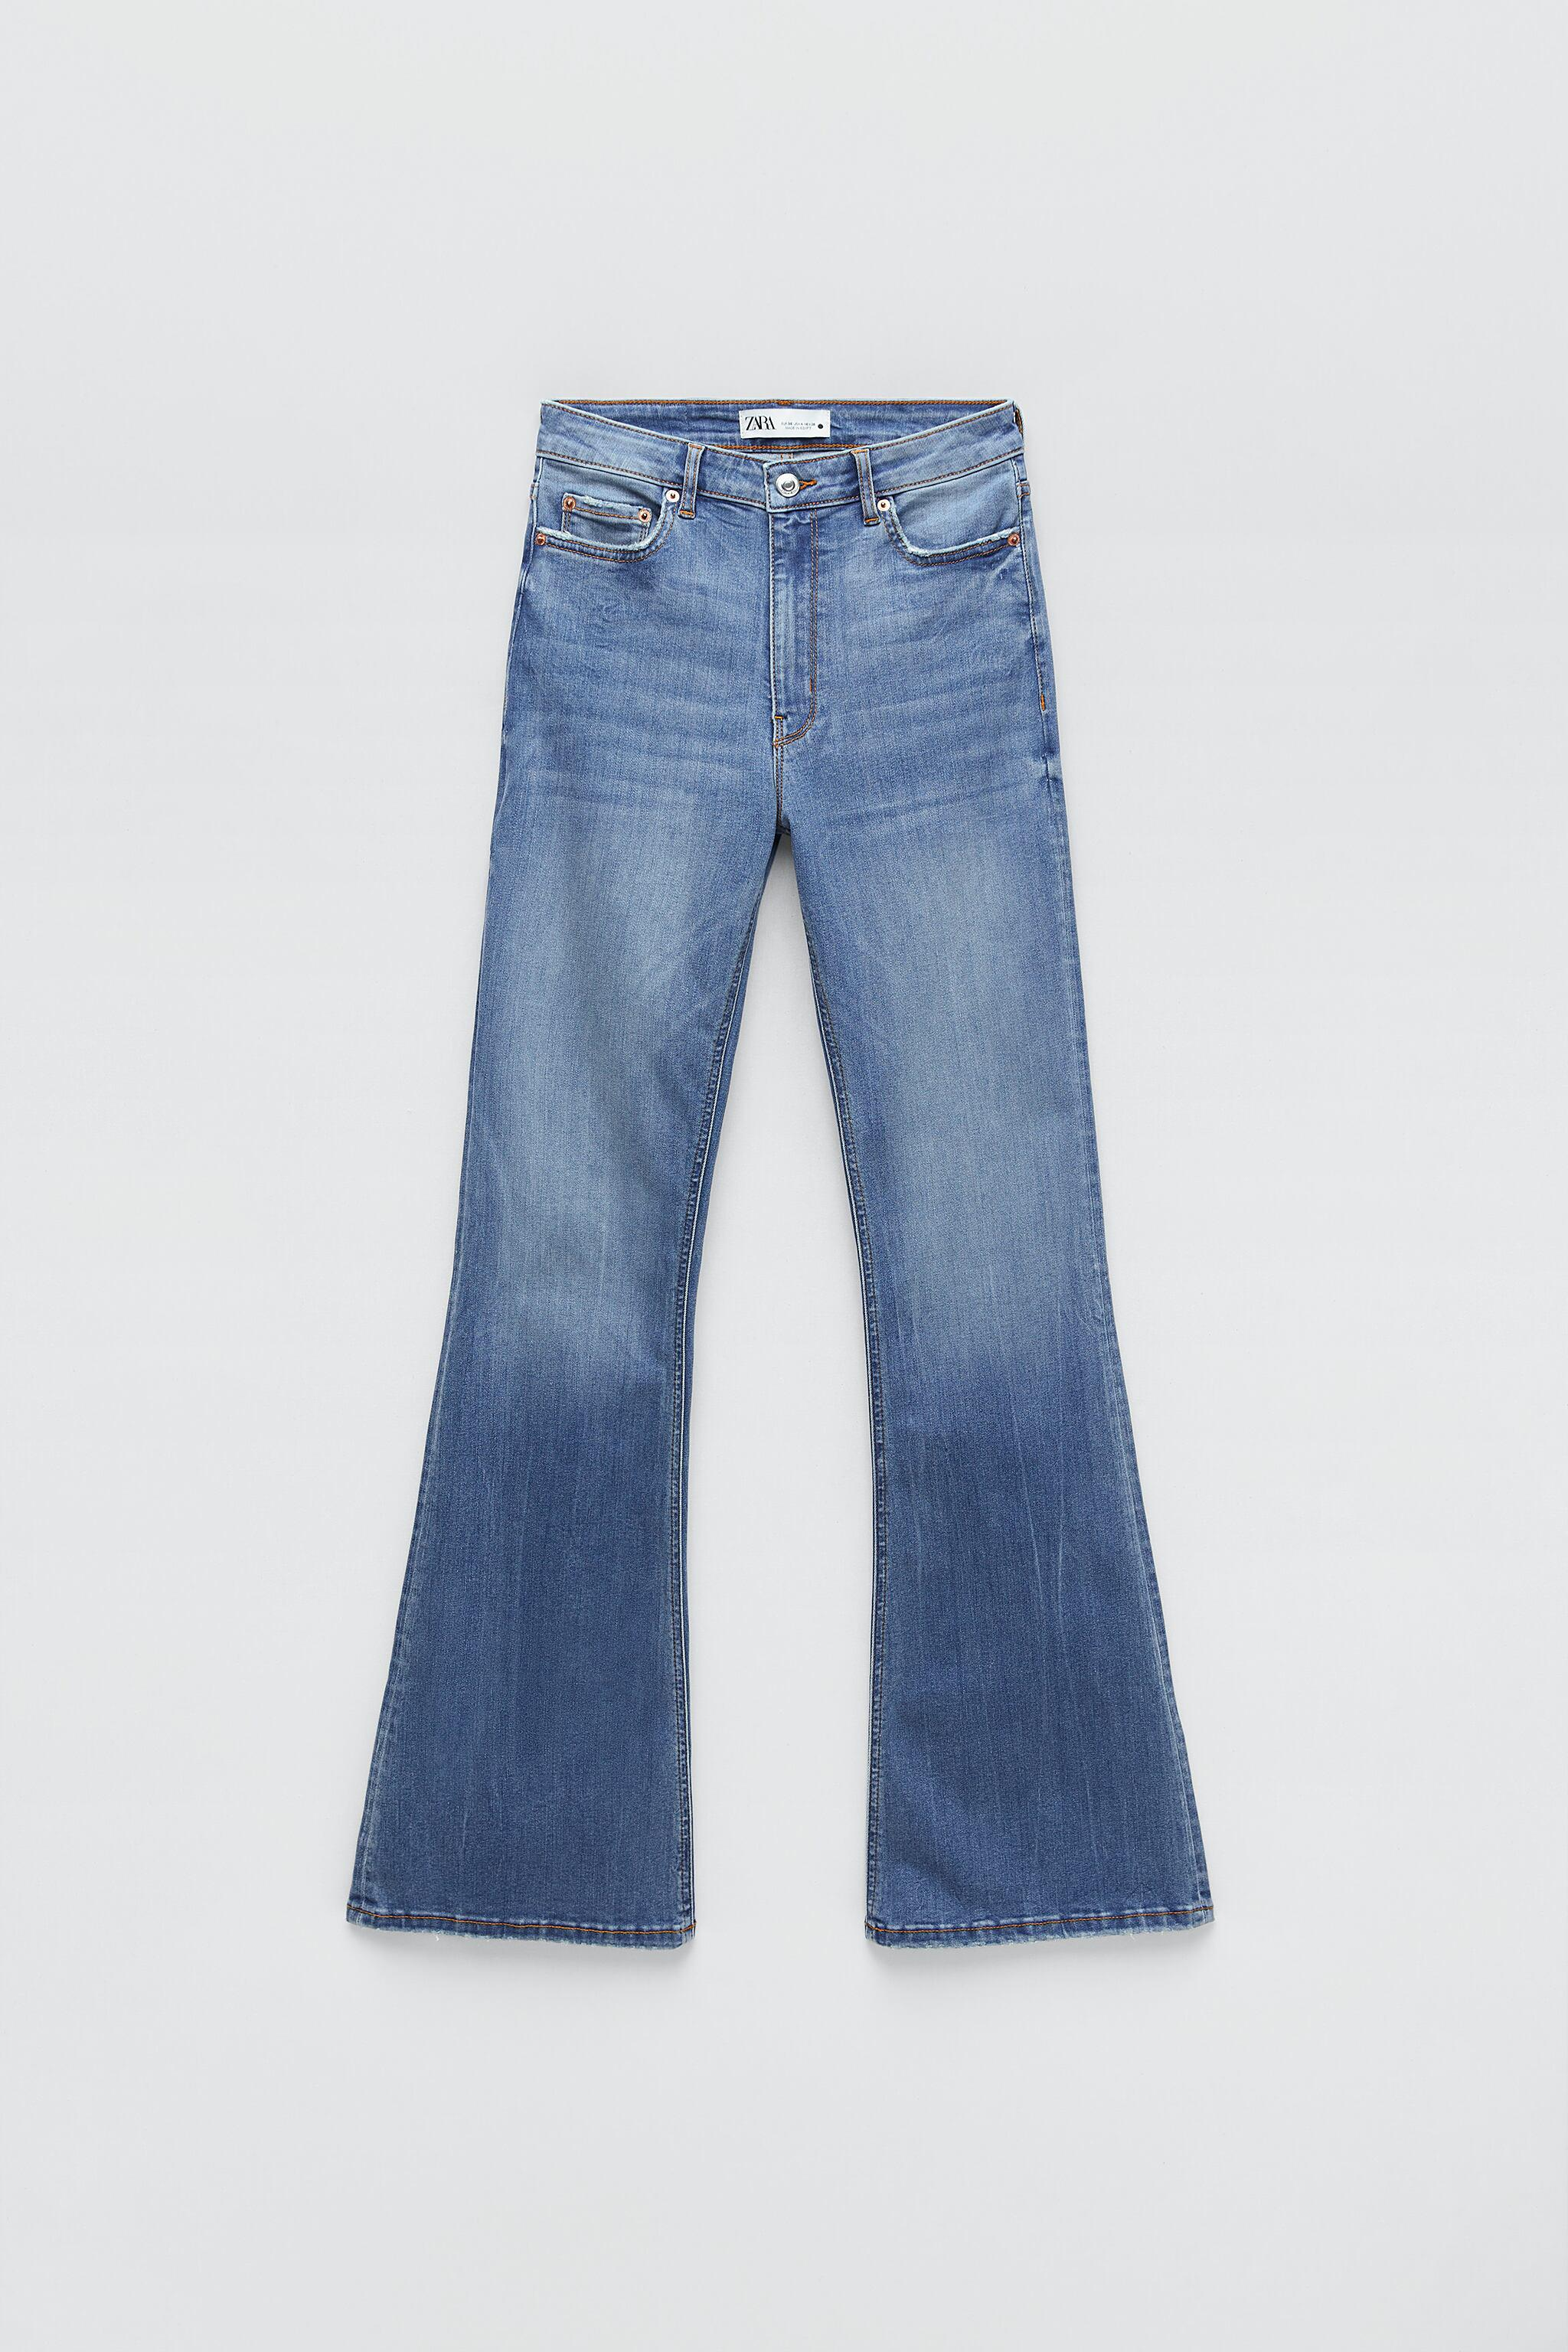 ZW THE SKINNY FLARE JEANS 5